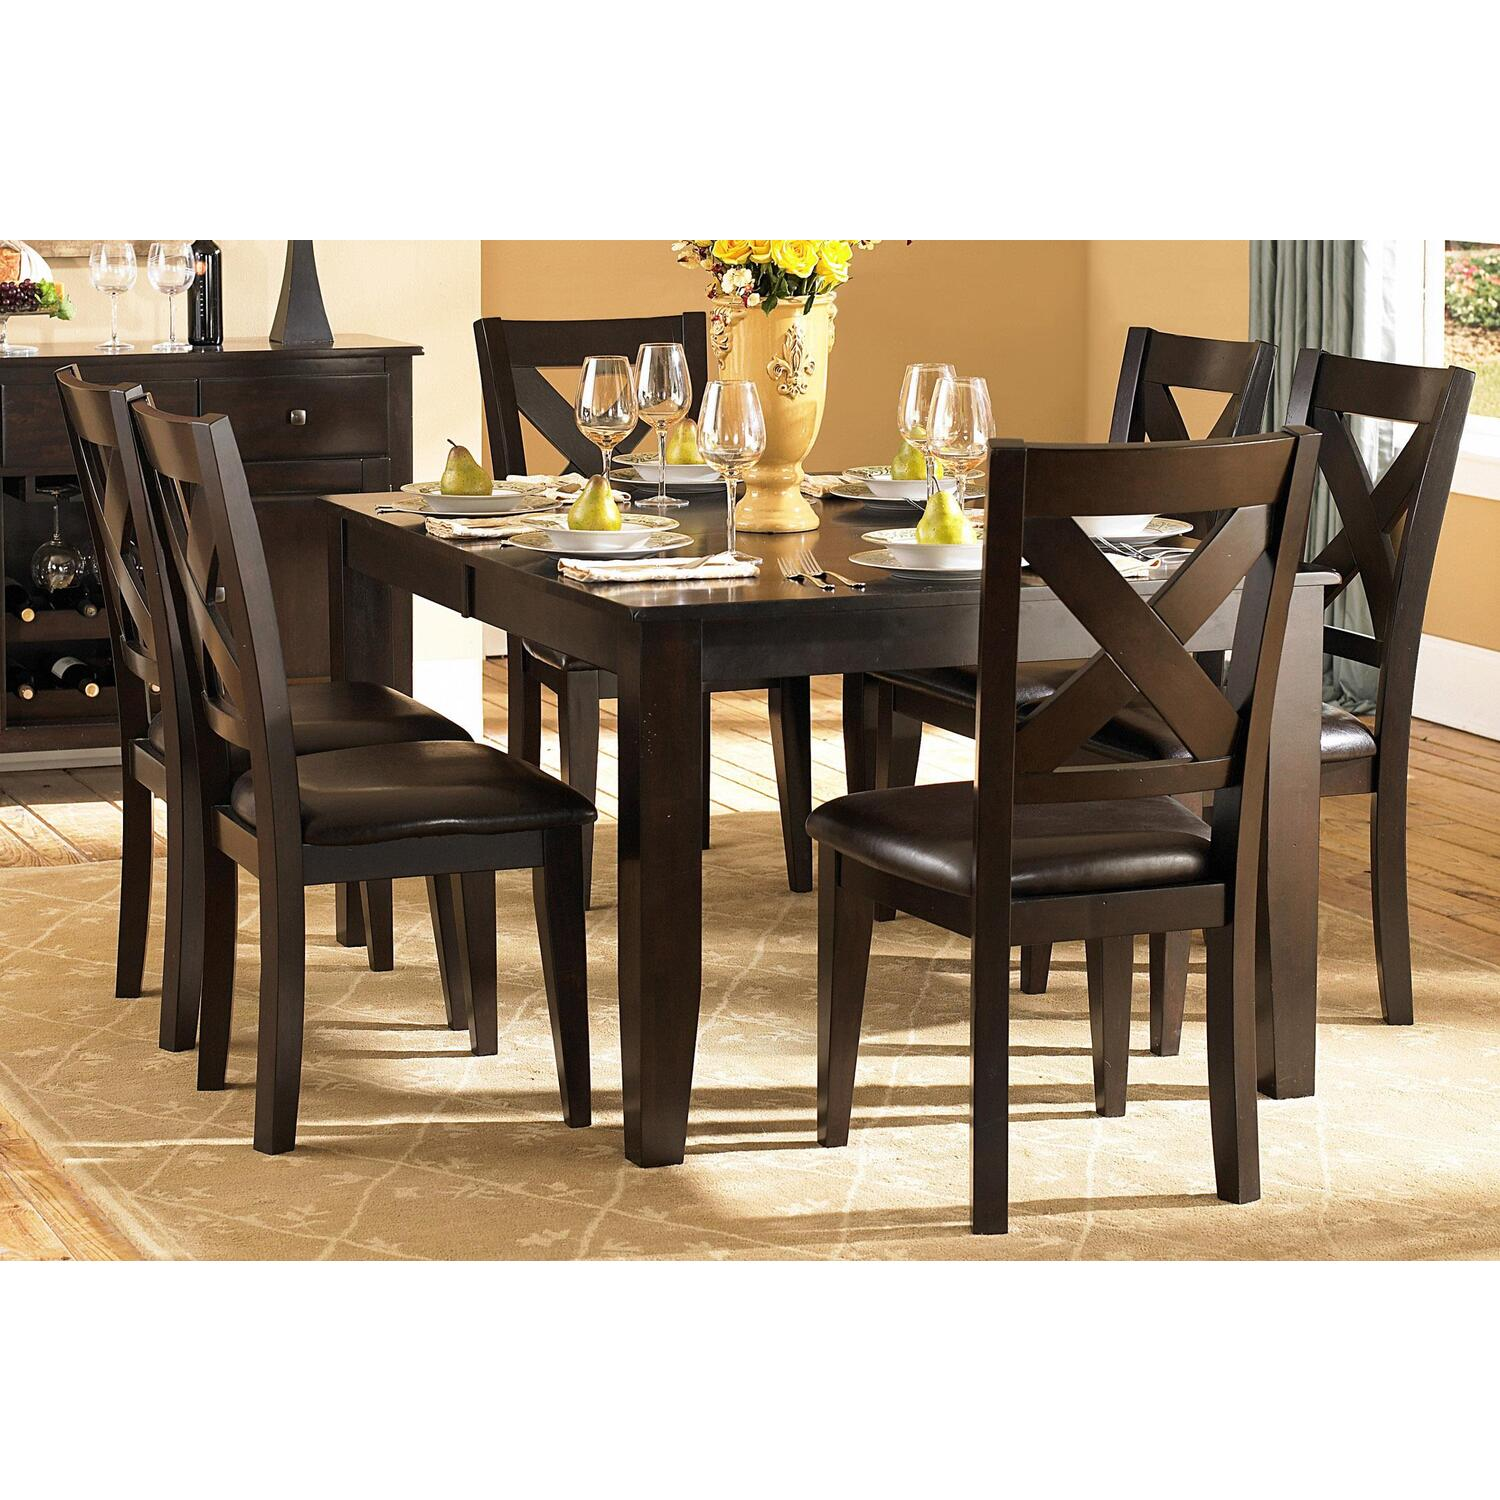 crown point dining table set